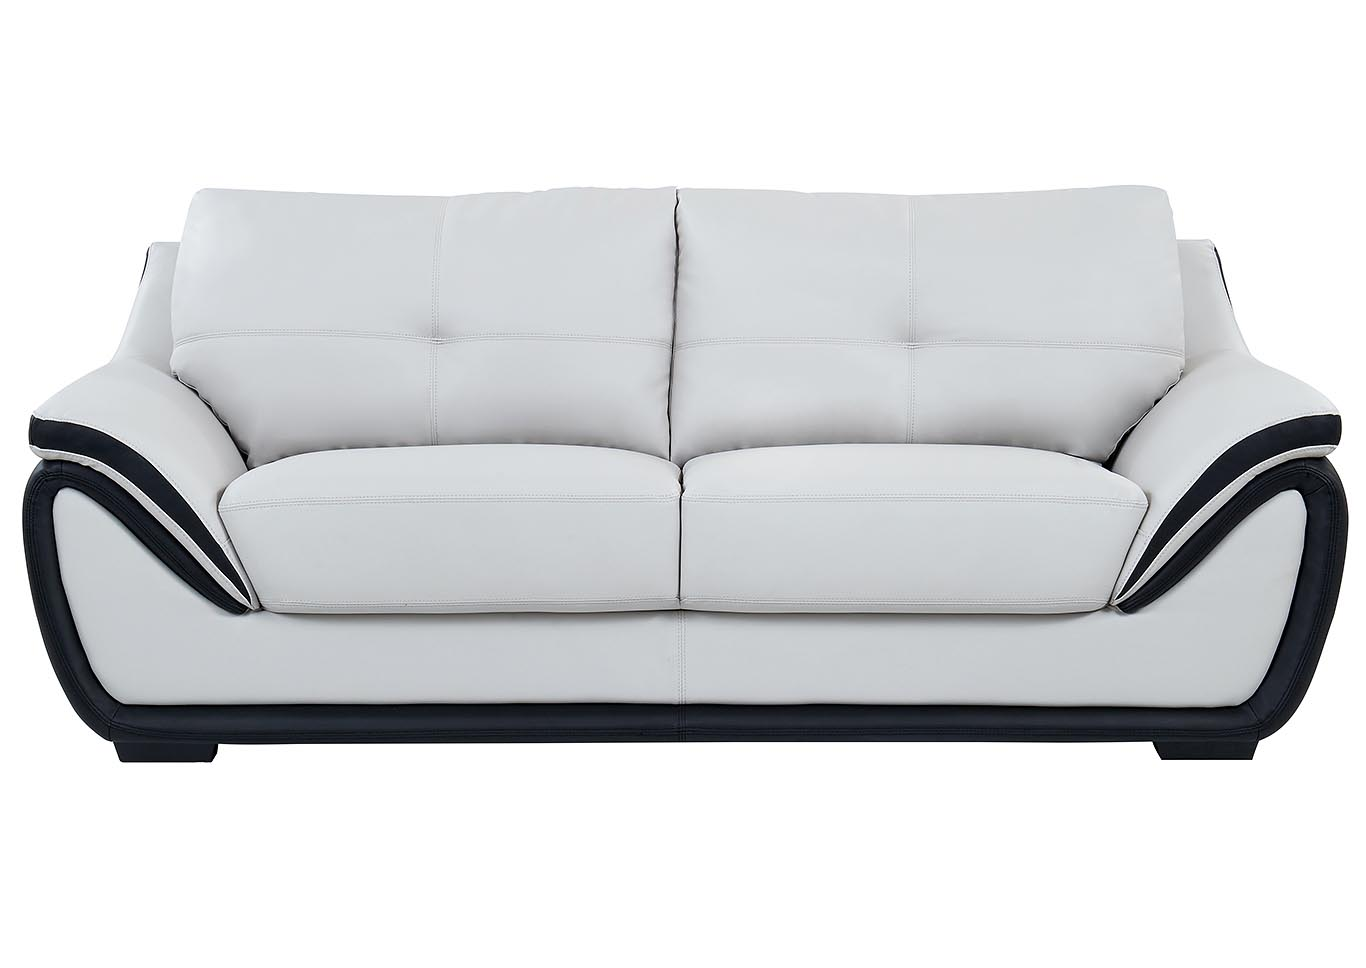 Natalie Light Grey/Black Sofa,Global Furniture USA